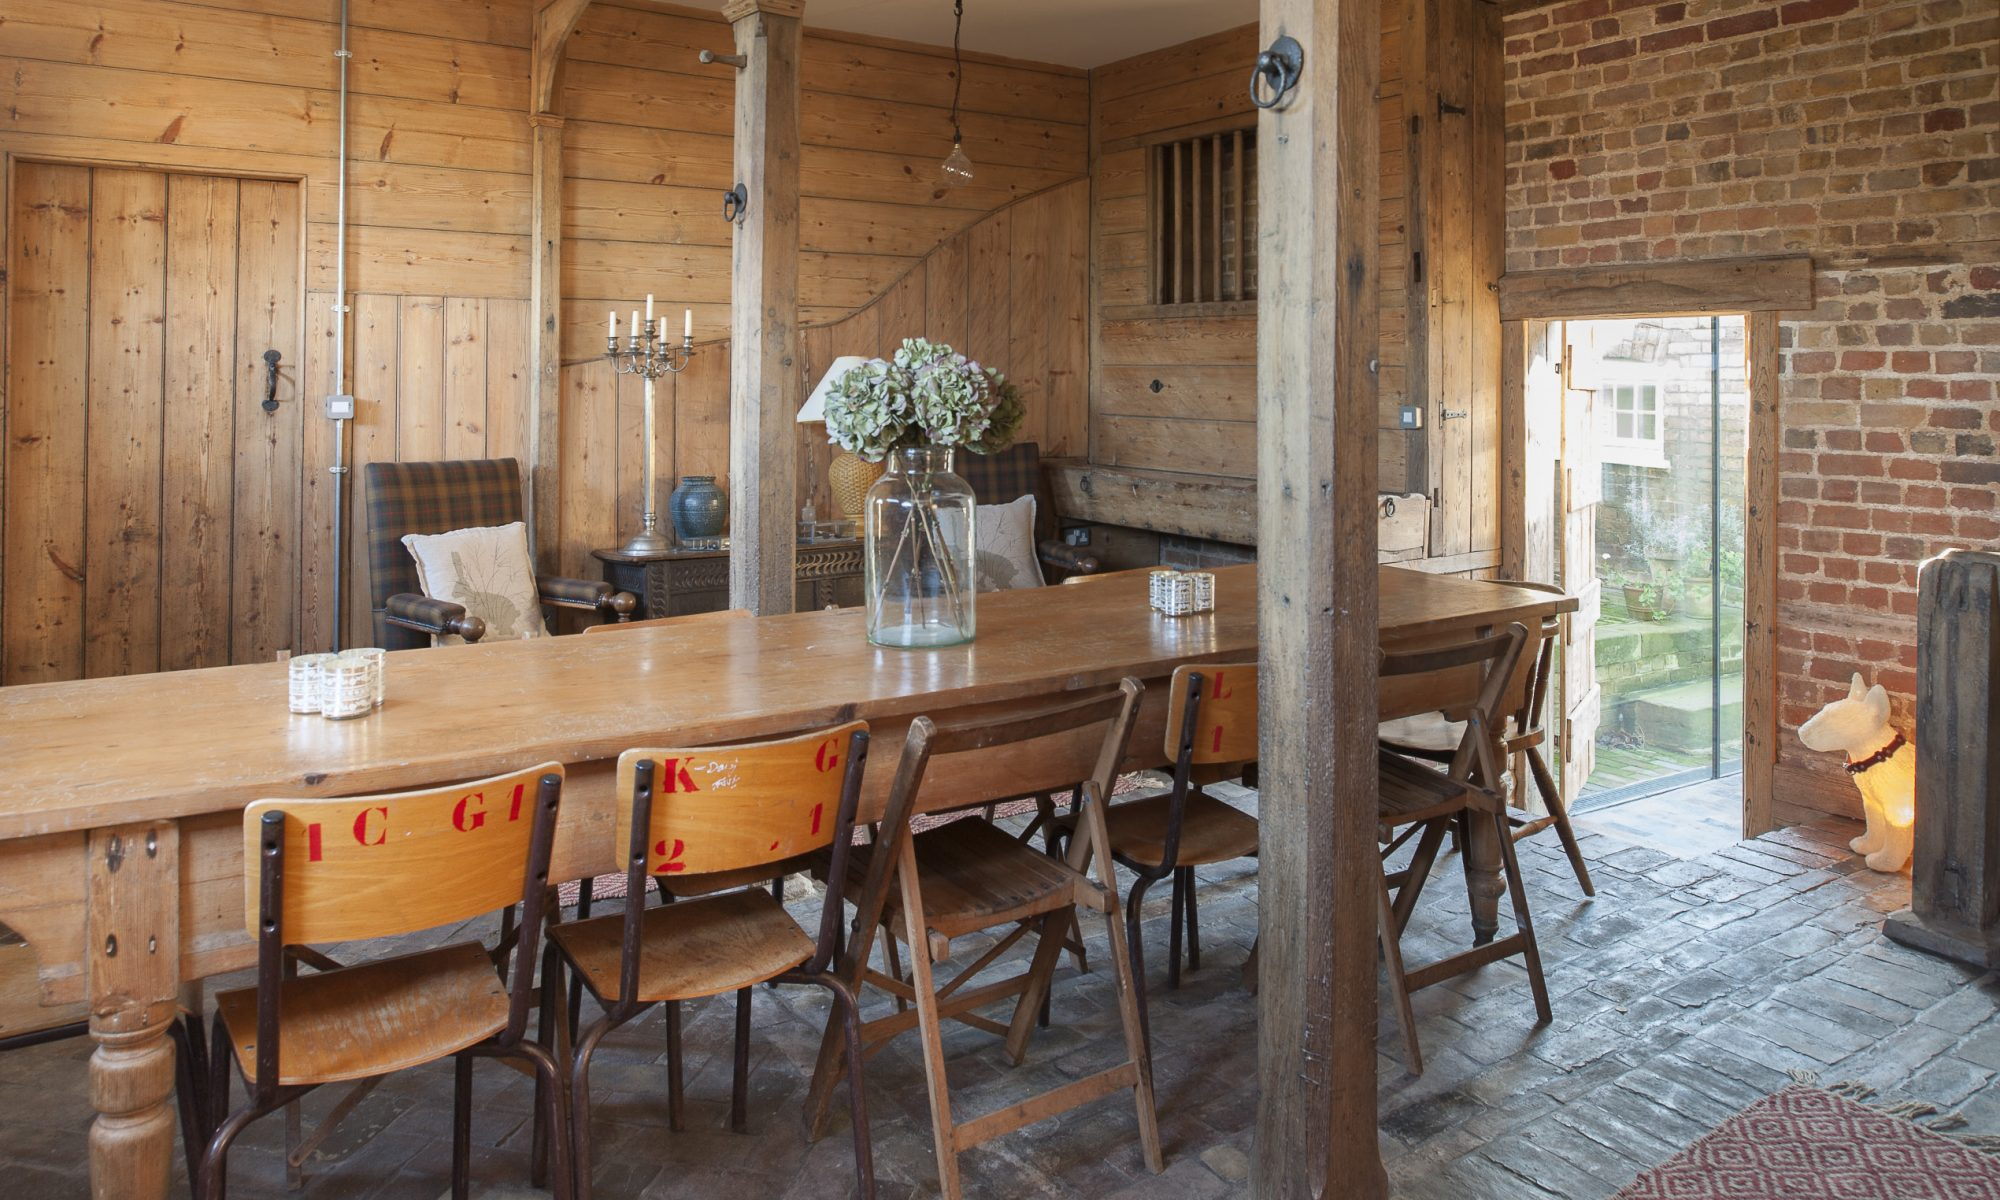 The pièce de résistance of Amy and Adrian's conversion is the coach house. At one end of the room are the original hay feeders and mangers, now, like all the woodwork, sandblasted and pristine